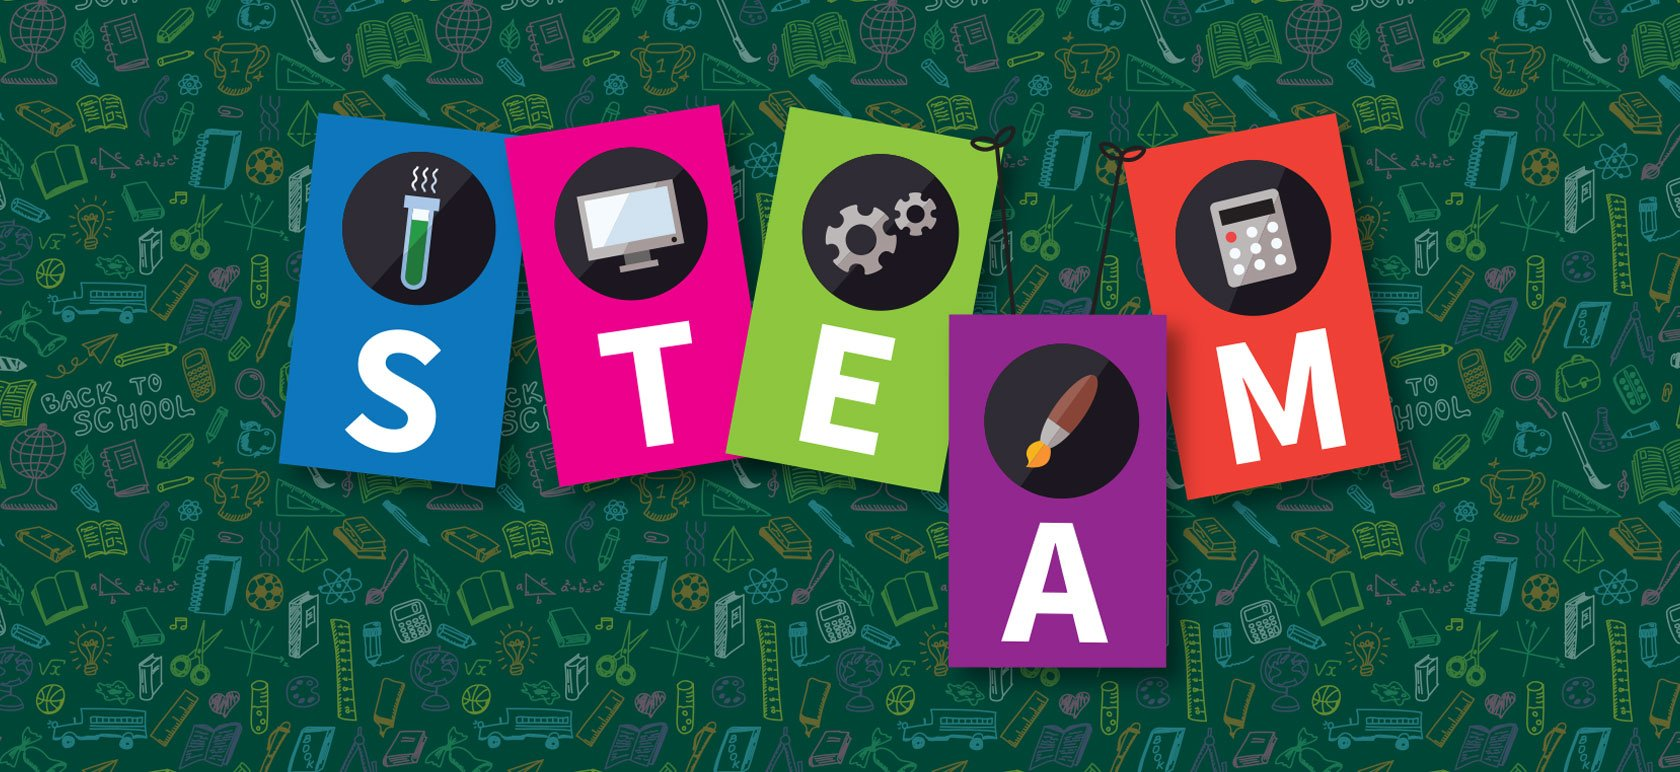 From STEM to STEAM for Arts Education